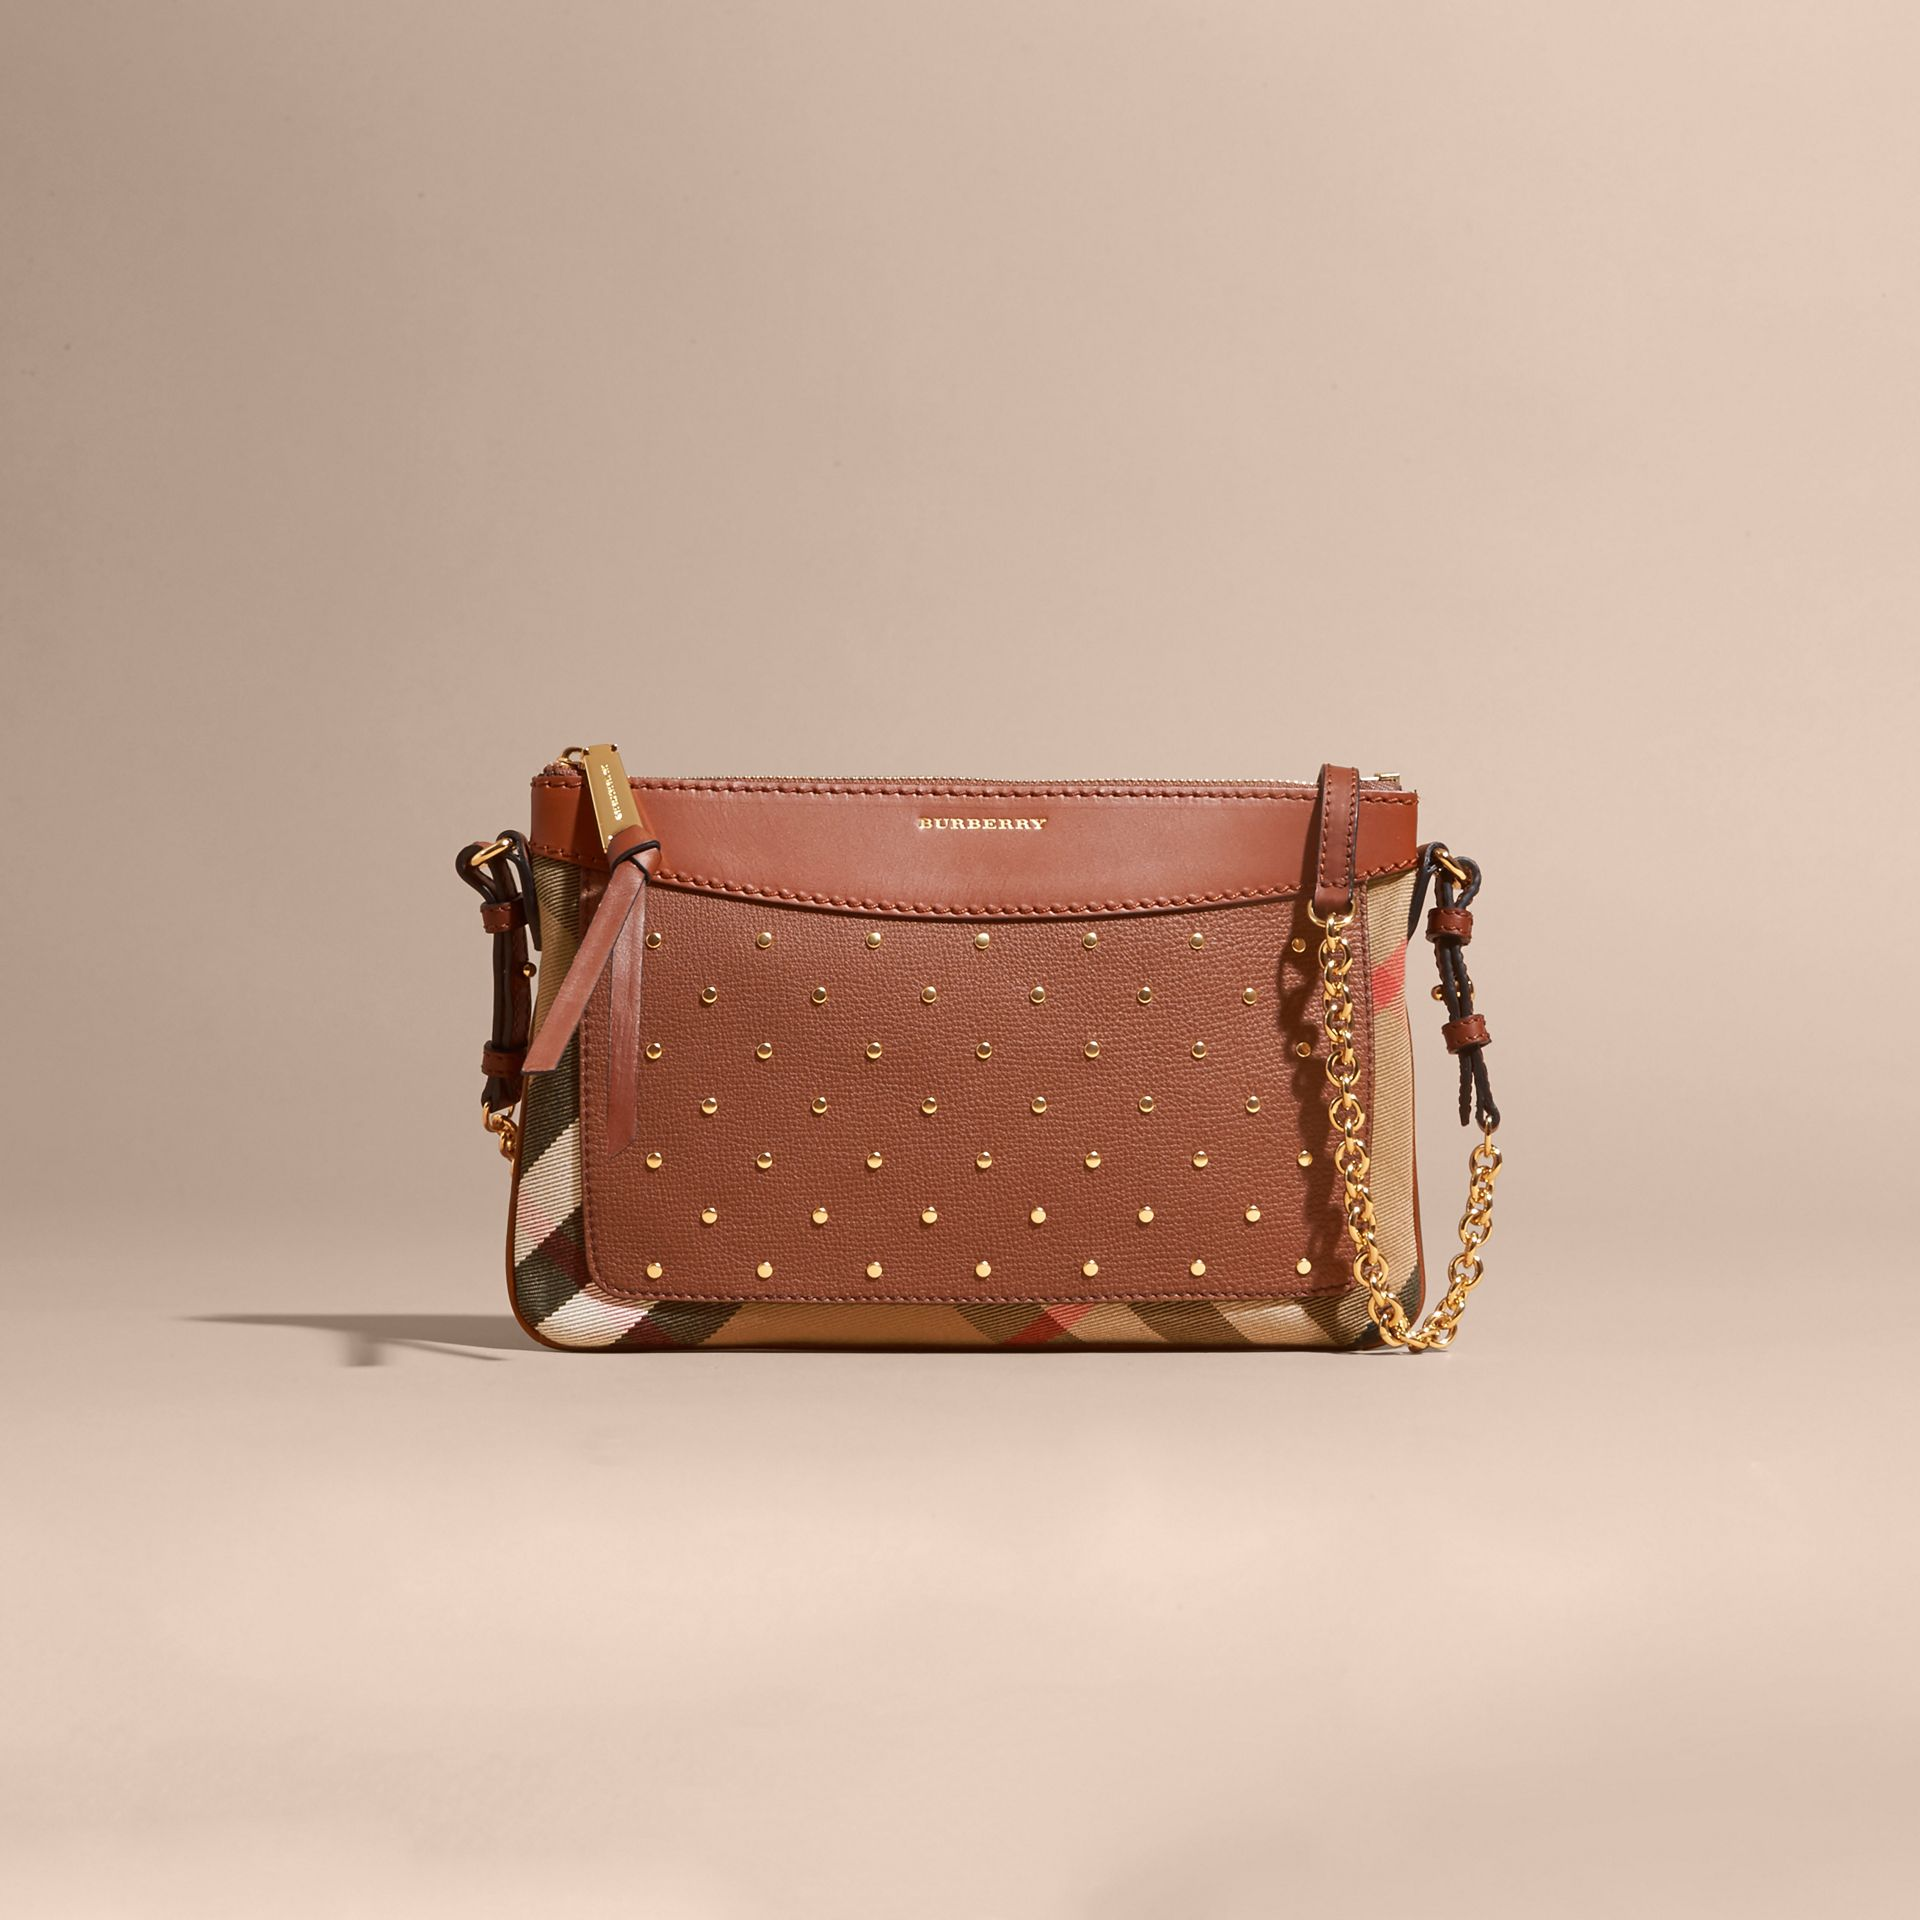 Riveted Leather and House Check Clutch Bag in Tan - gallery image 9